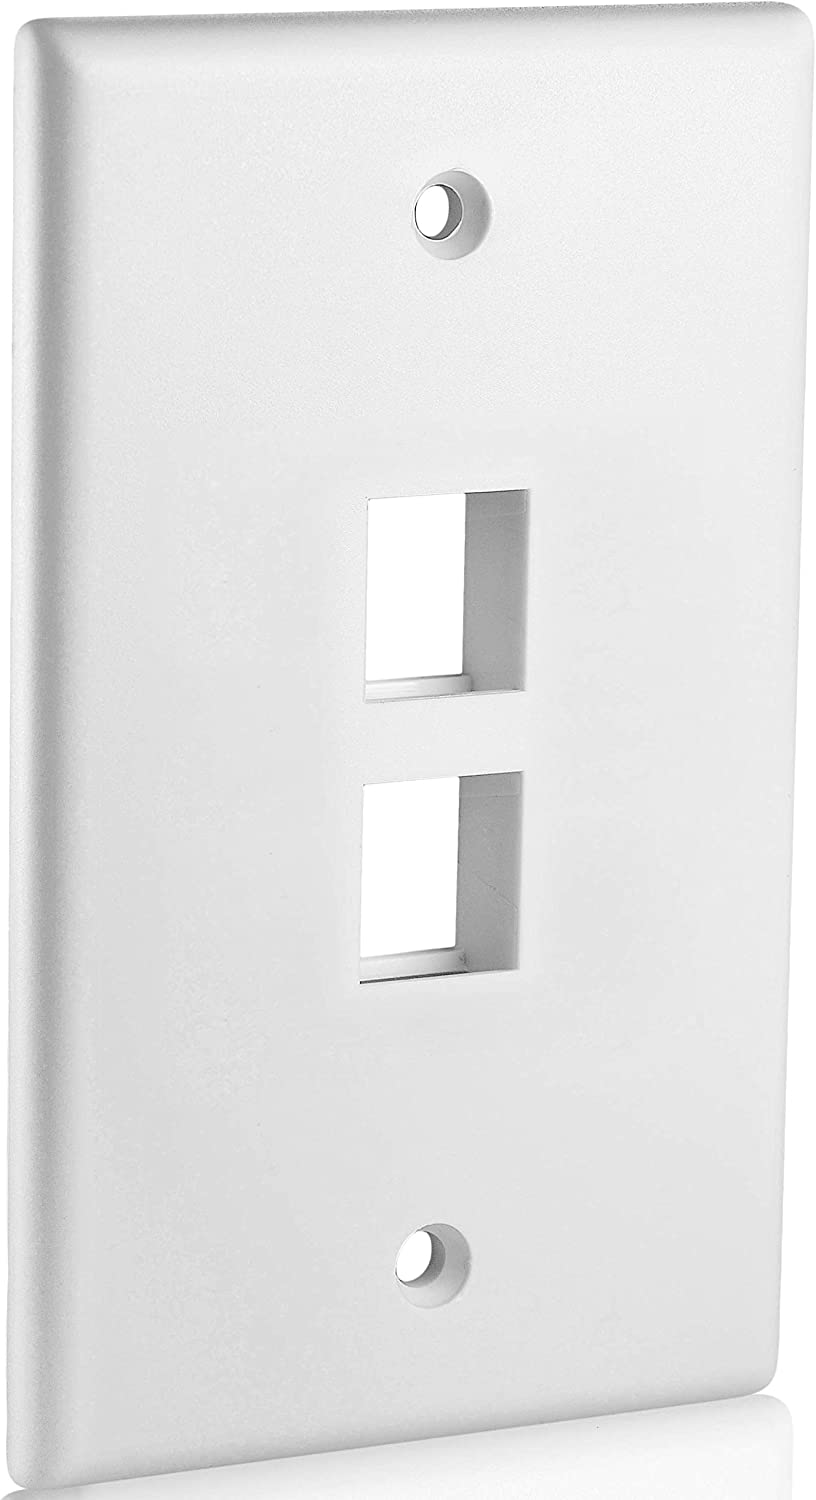 Pack of 3 Keystone Port Single Gang Data Wall Plates White 5